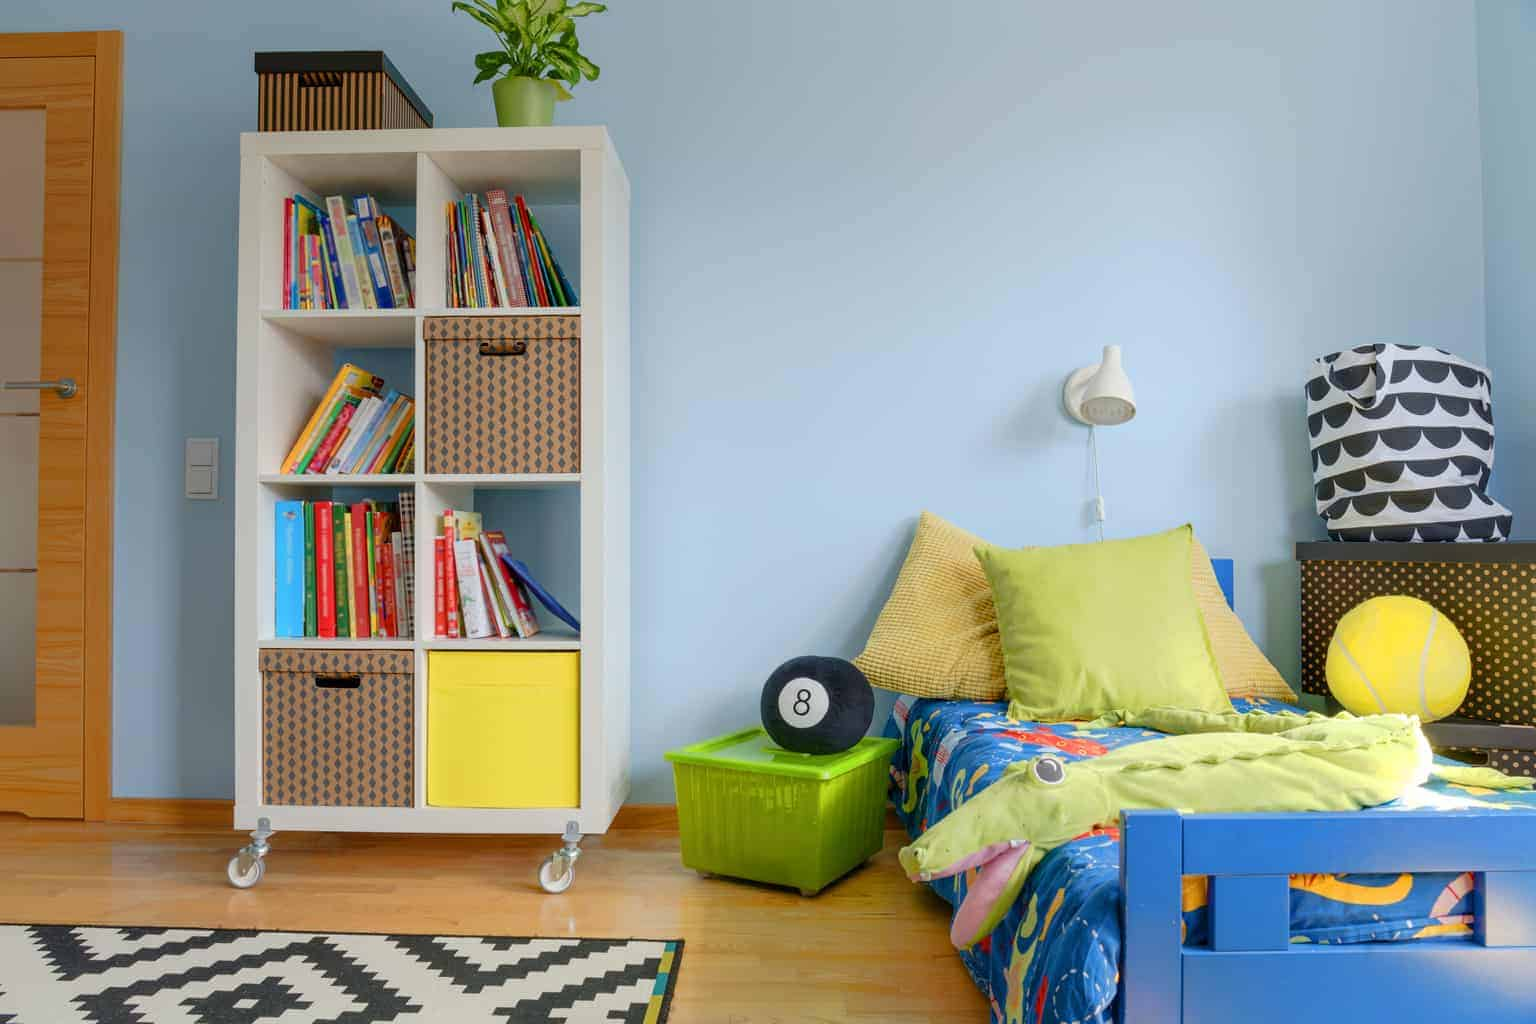 Simple Storage – How To Keep Your Children's Room Tidy